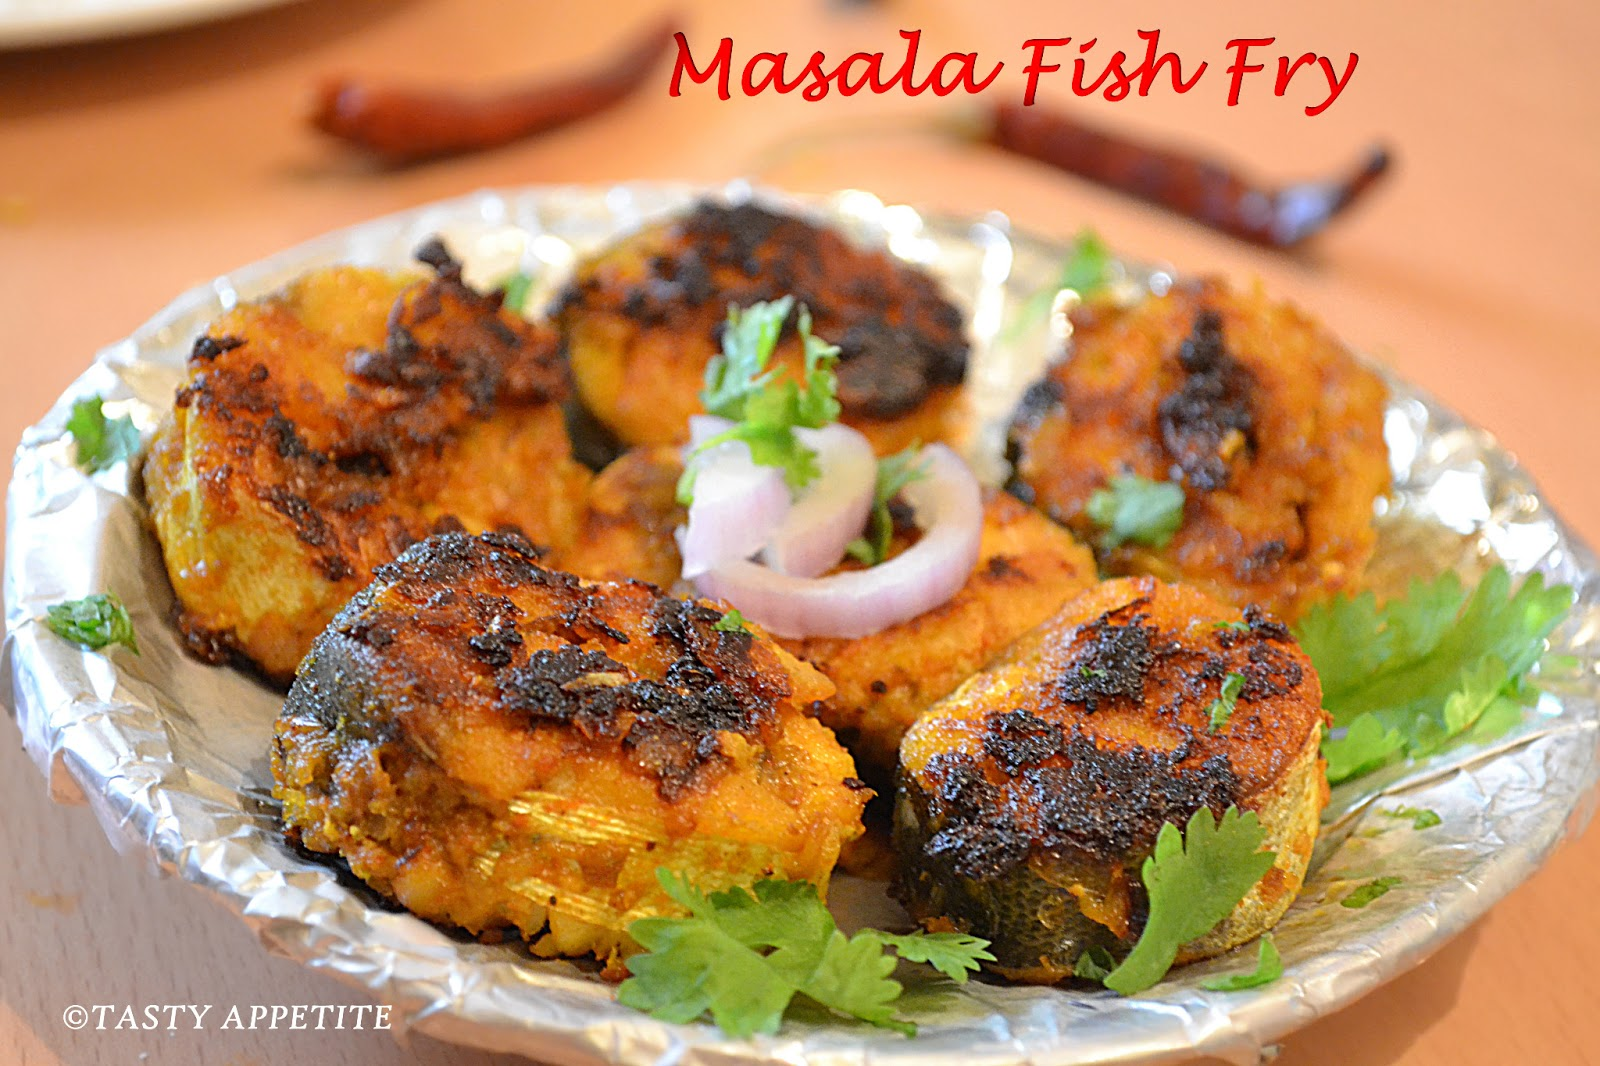 How to make masala fish fry south indian fish fry recipe easy how to make masala fish fry south indian fish fry recipe easy step by step forumfinder Gallery